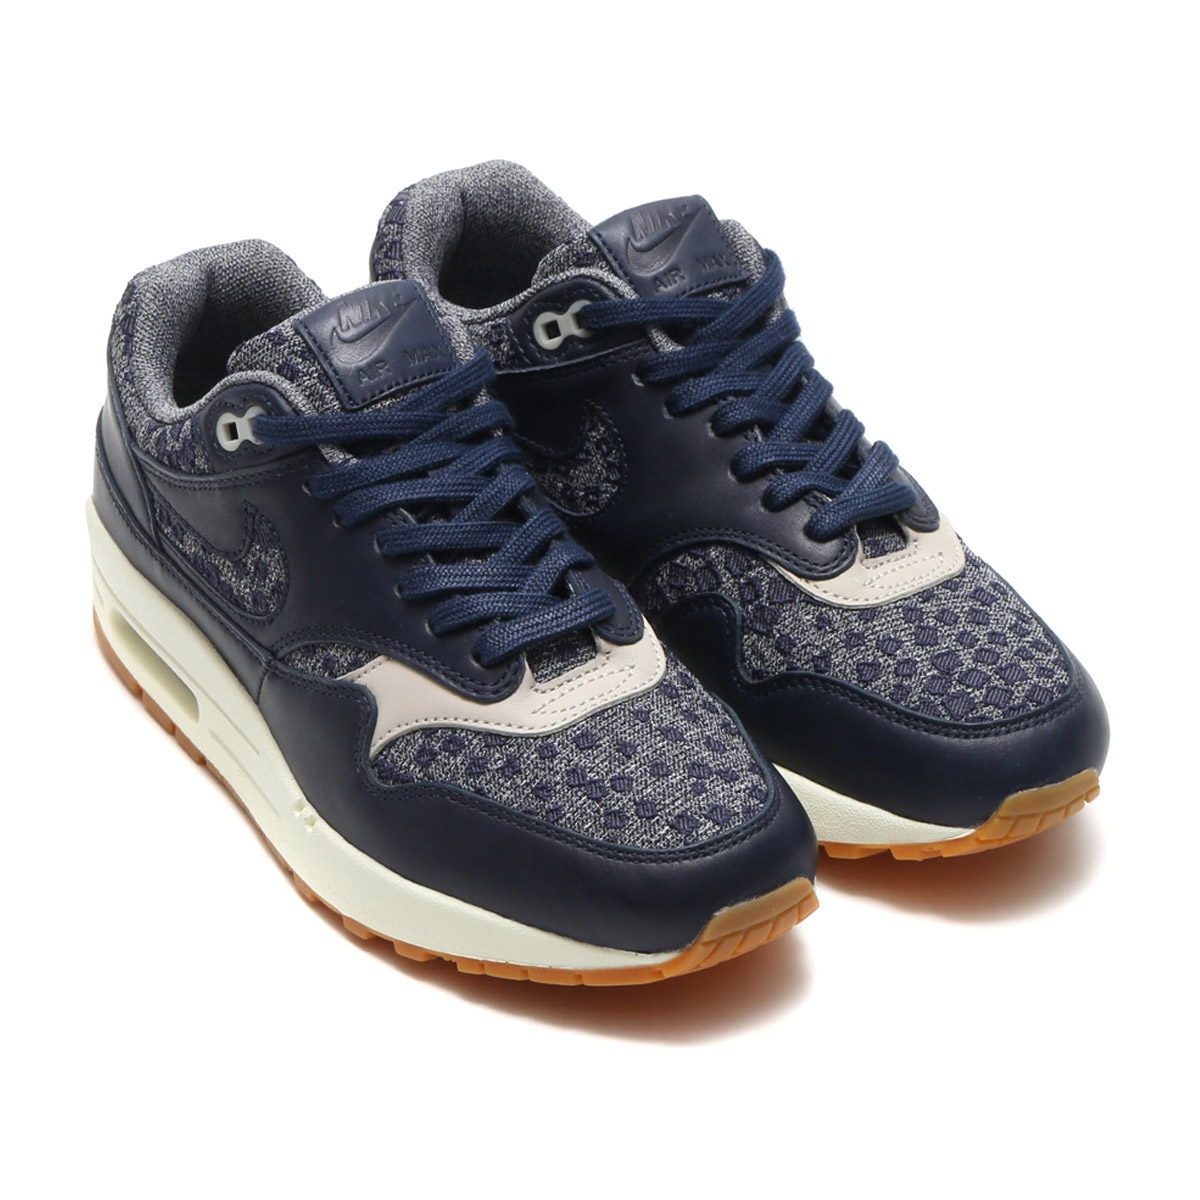 new arrival 77e8f 9c698 ... and the comfort that adopted upper of the classic leather and クッショニング  of the gentle high repulsion fuse as for the Nike women Air Max 1 premium.